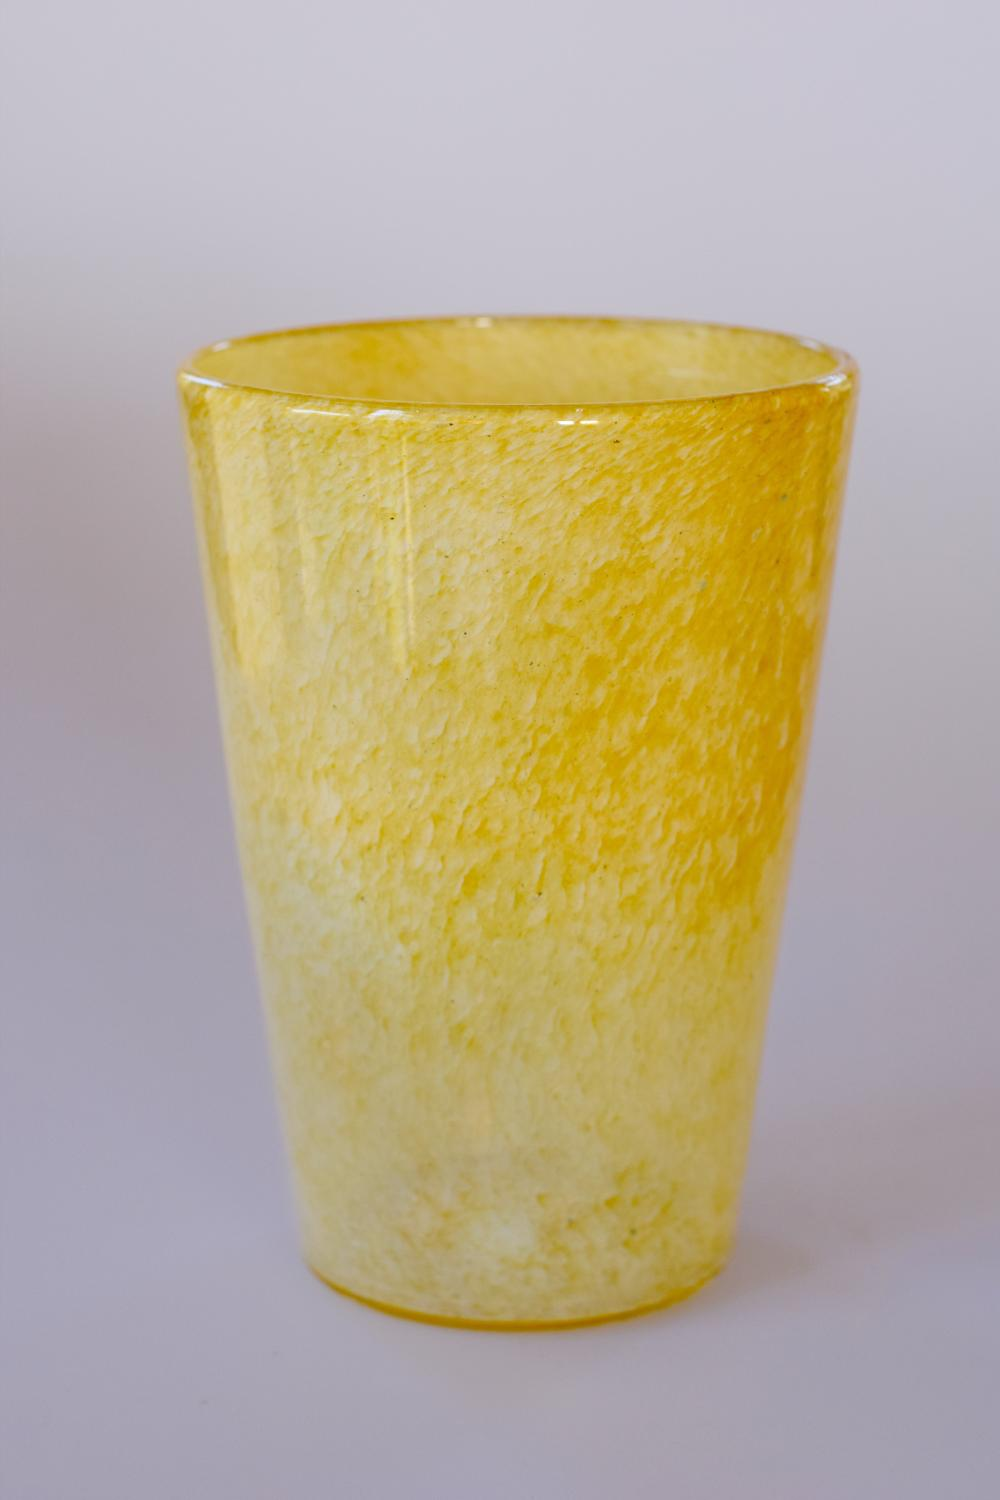 Pale yellow cloudy vase